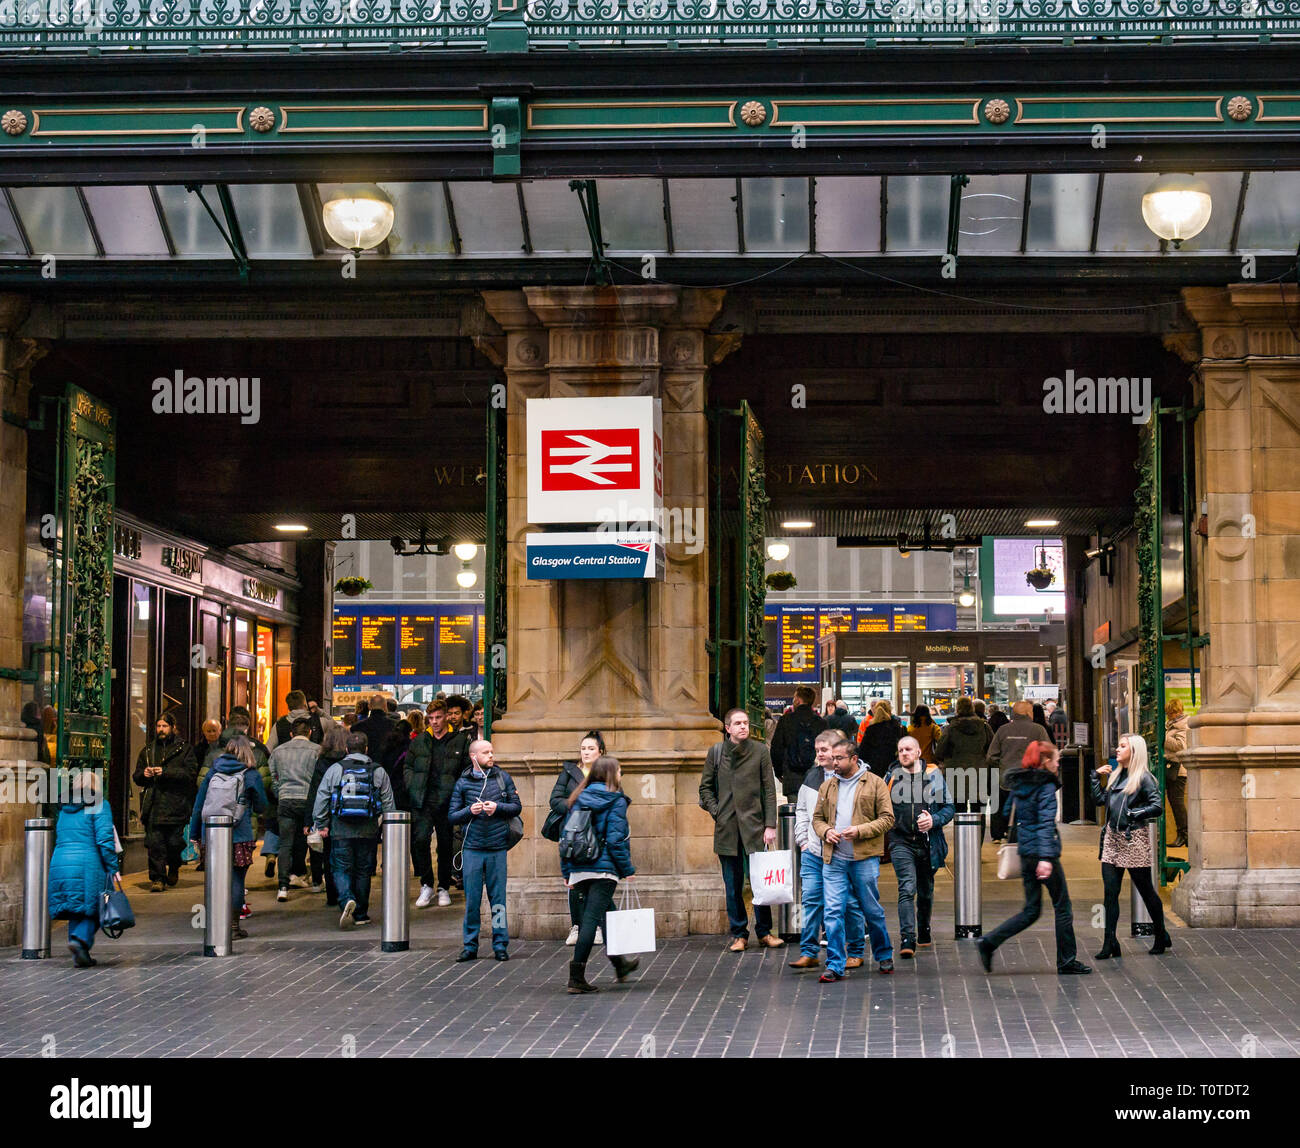 Commuters walking by Victorian entrance of Glasgow Central Station, Scotland, UK - Stock Image